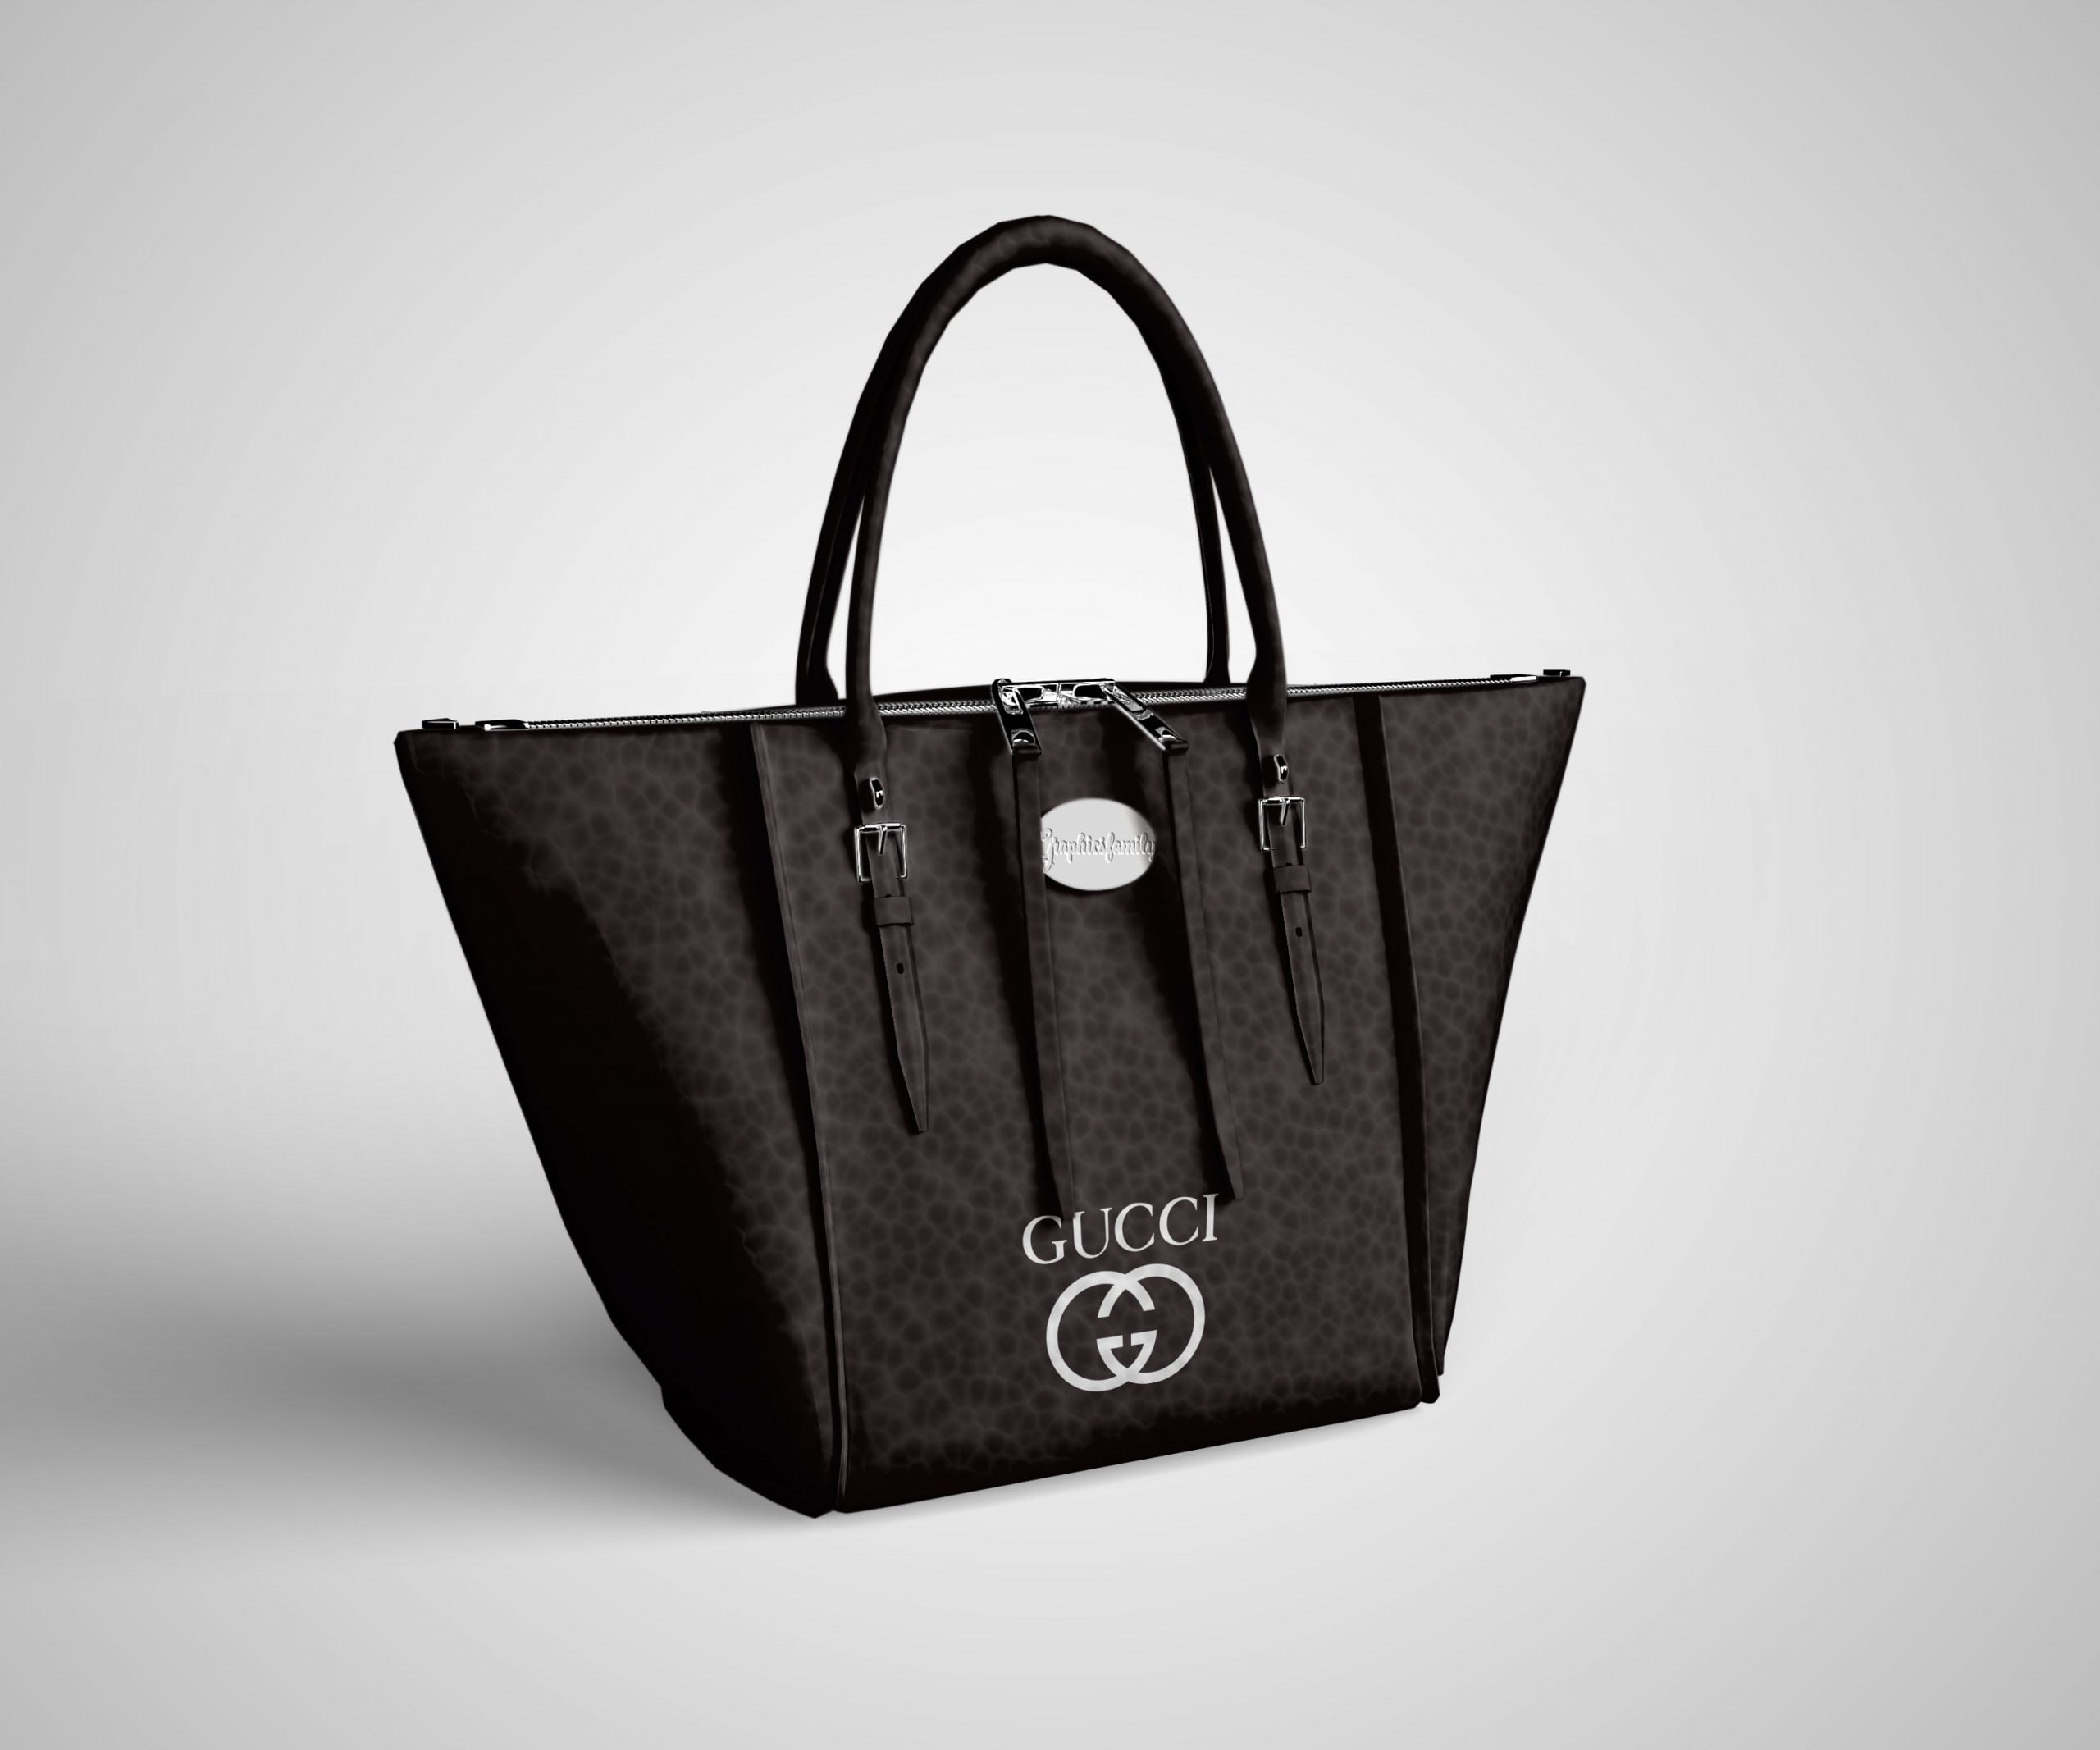 Free-GUCCI-Woman-Fashion-Bag-Mockup